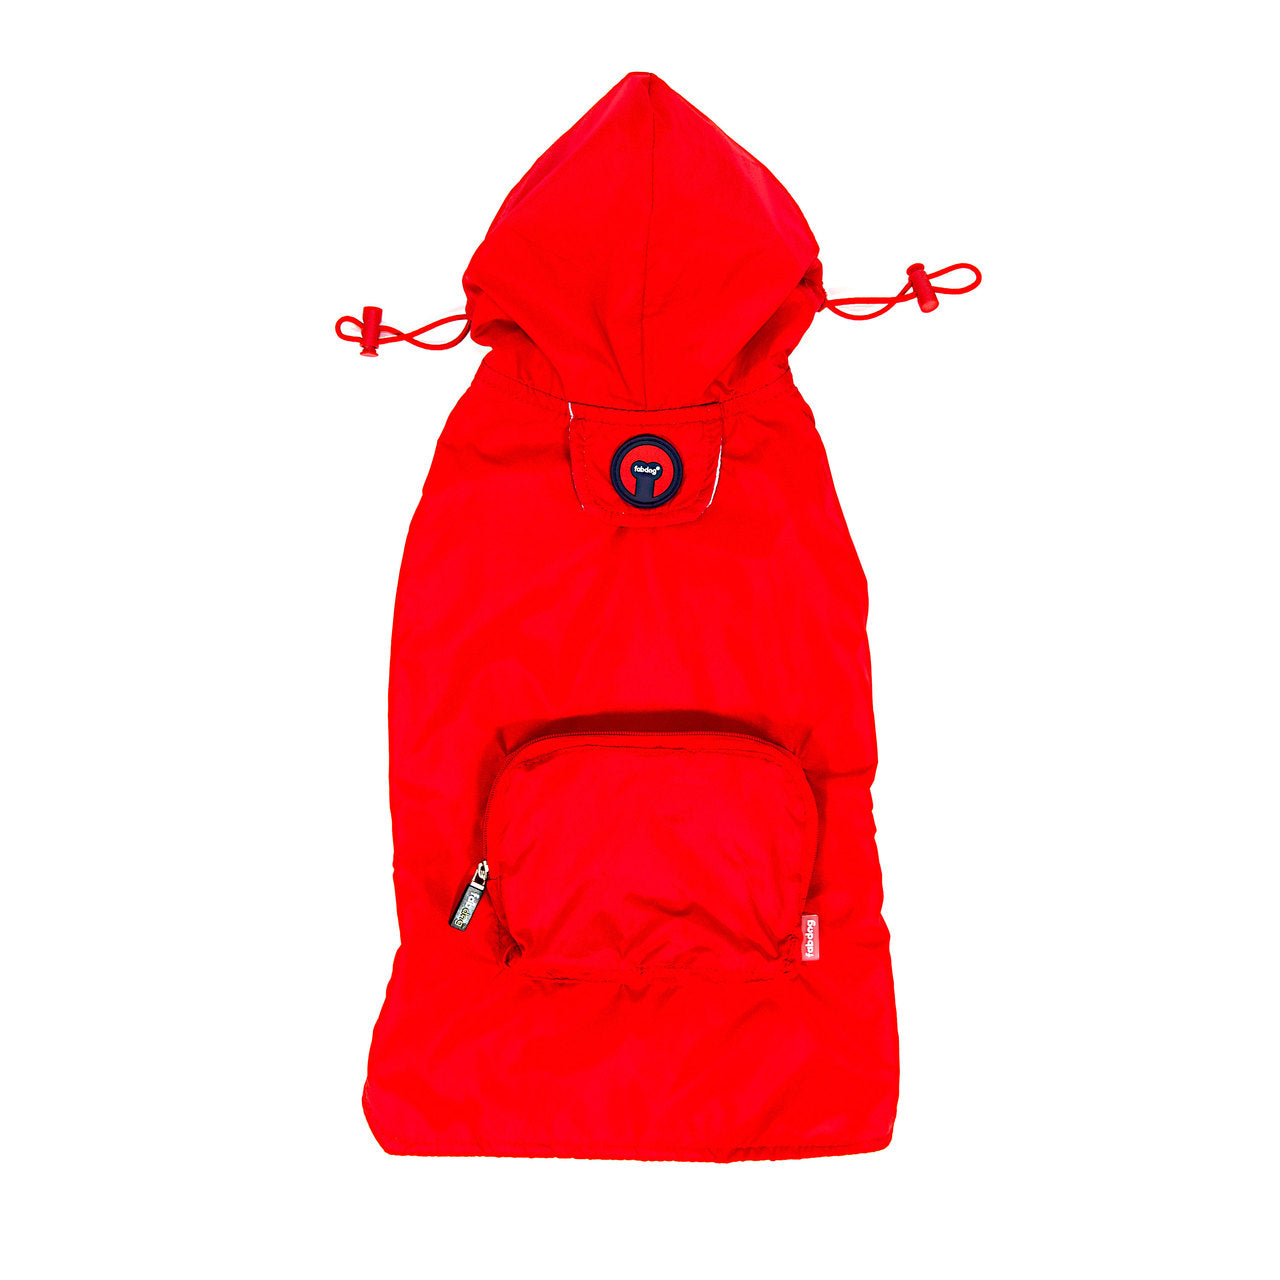 Red Packaway Raincoat